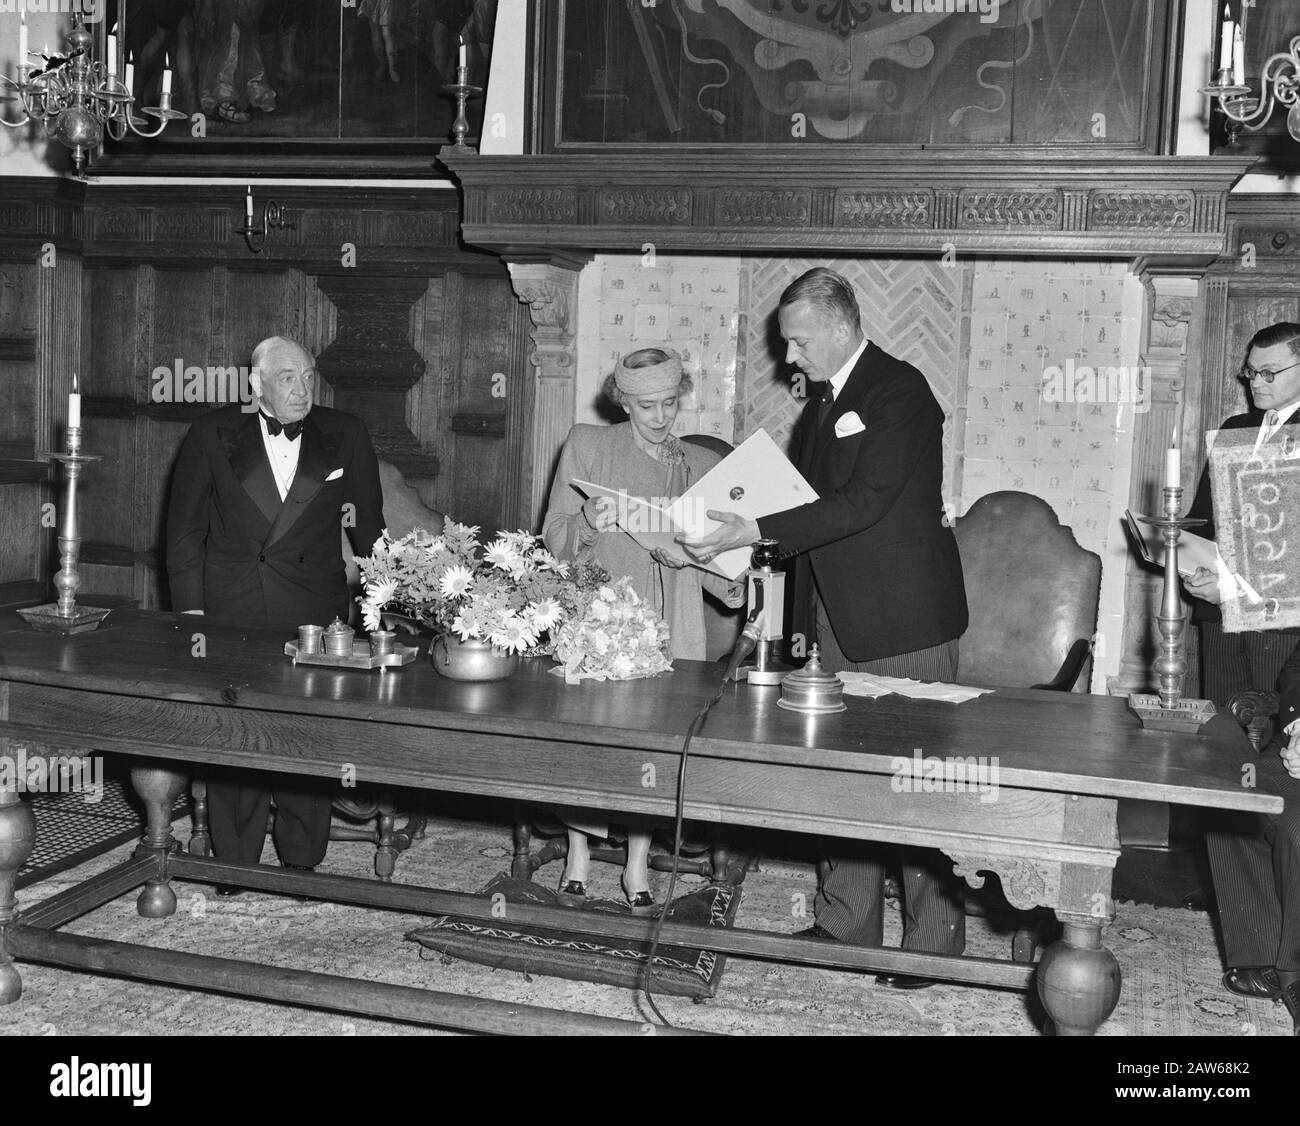 Queen Elisabeth of Belgium honorary member of the Dutch Bach Society Date: July 4, 1951 Location: Belgium Name of Person: Elizabeth, Queen of Great Britain Stock Photo